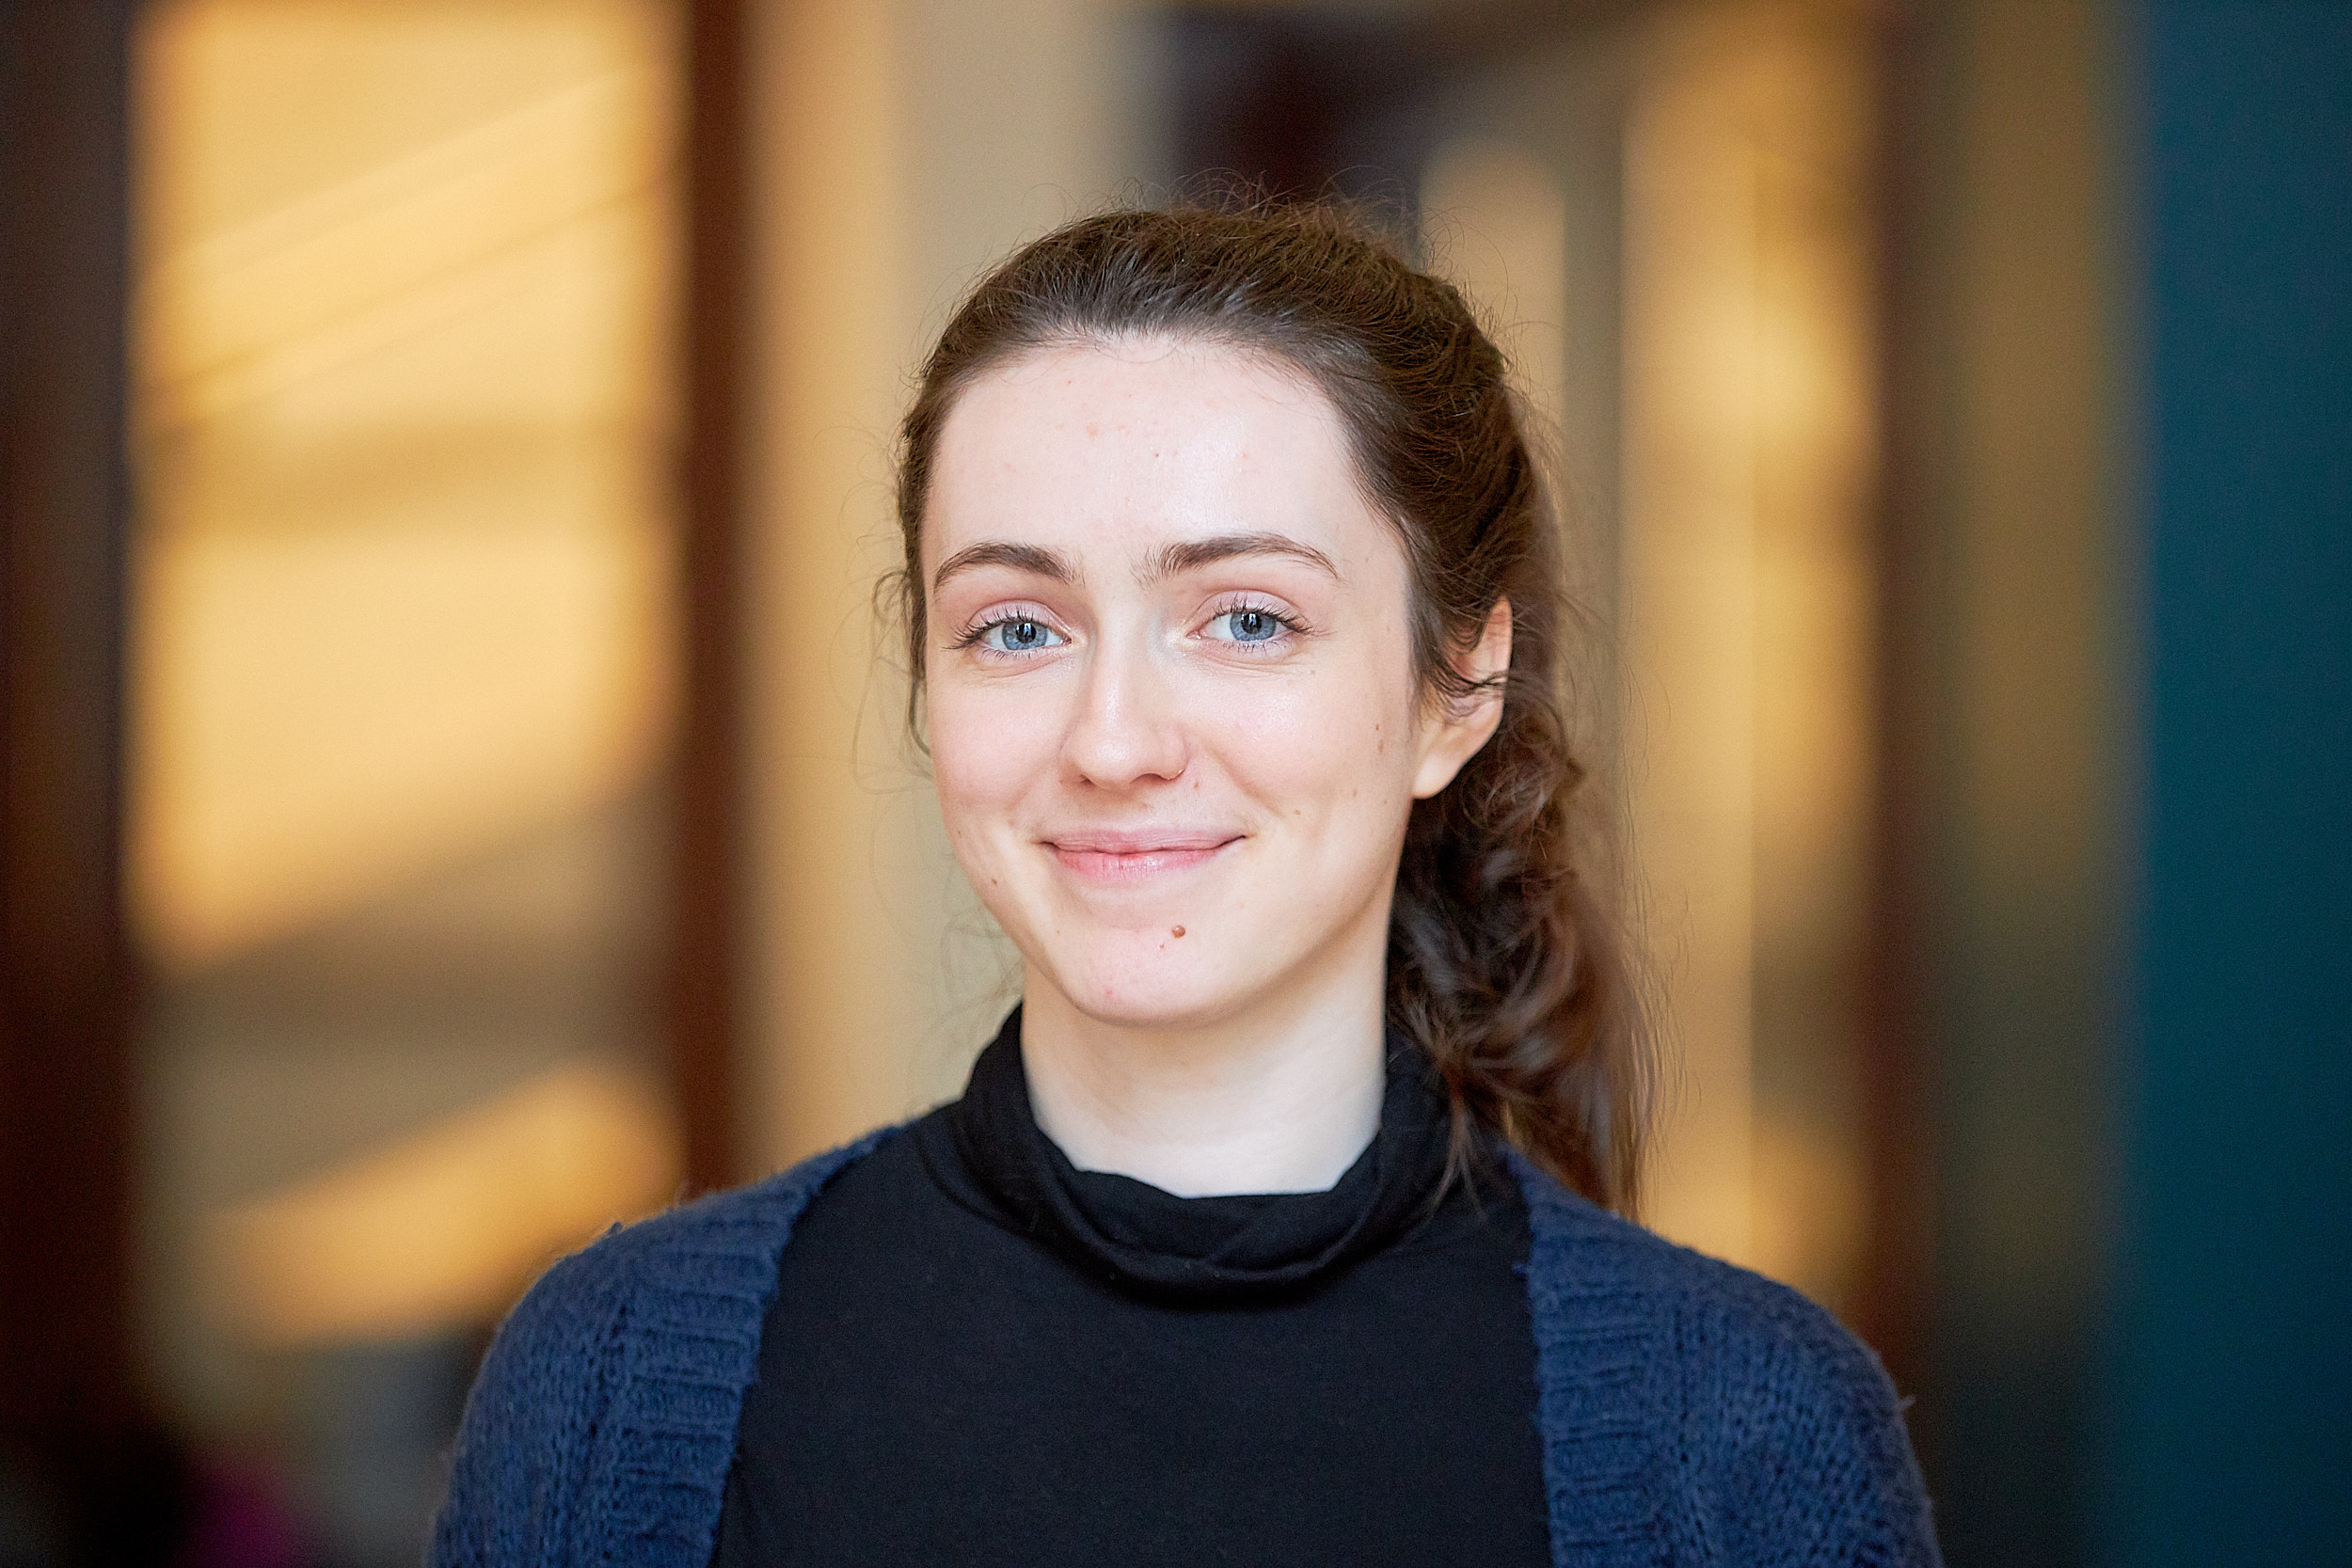 Becca Clayton is undertaking a Museum Futures placement at Tyne and Wear Archive and Museums